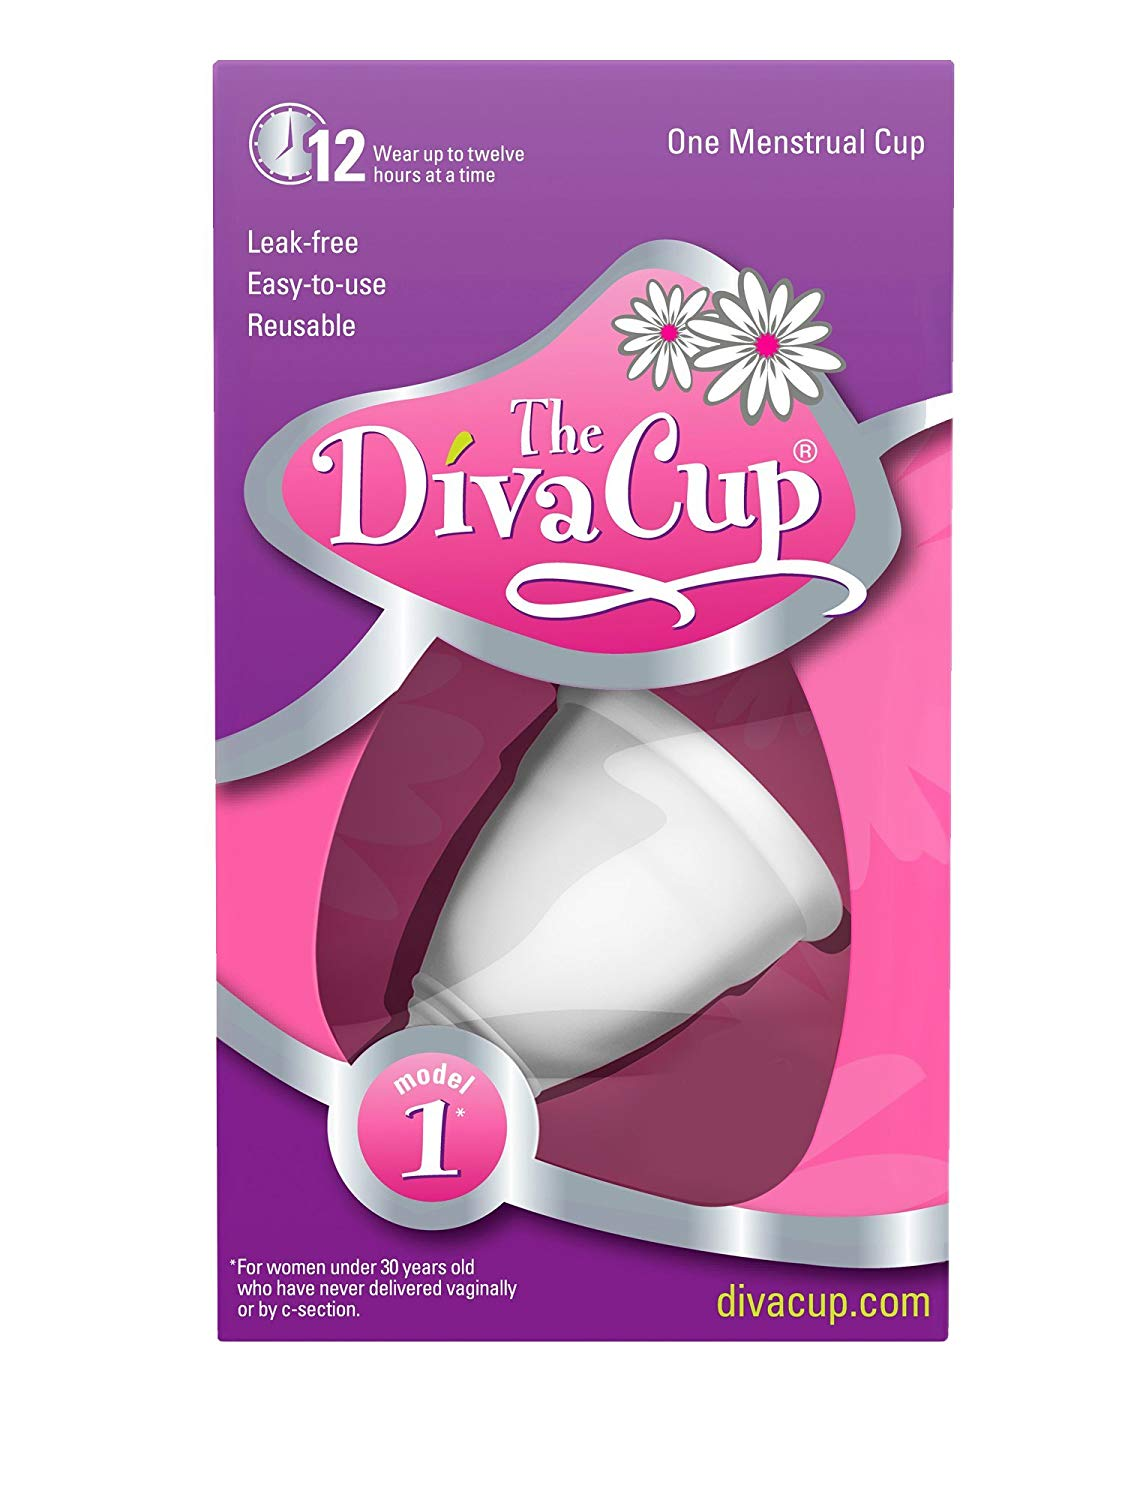 DivaCup Model 1 Menstrual Cup from Amazon